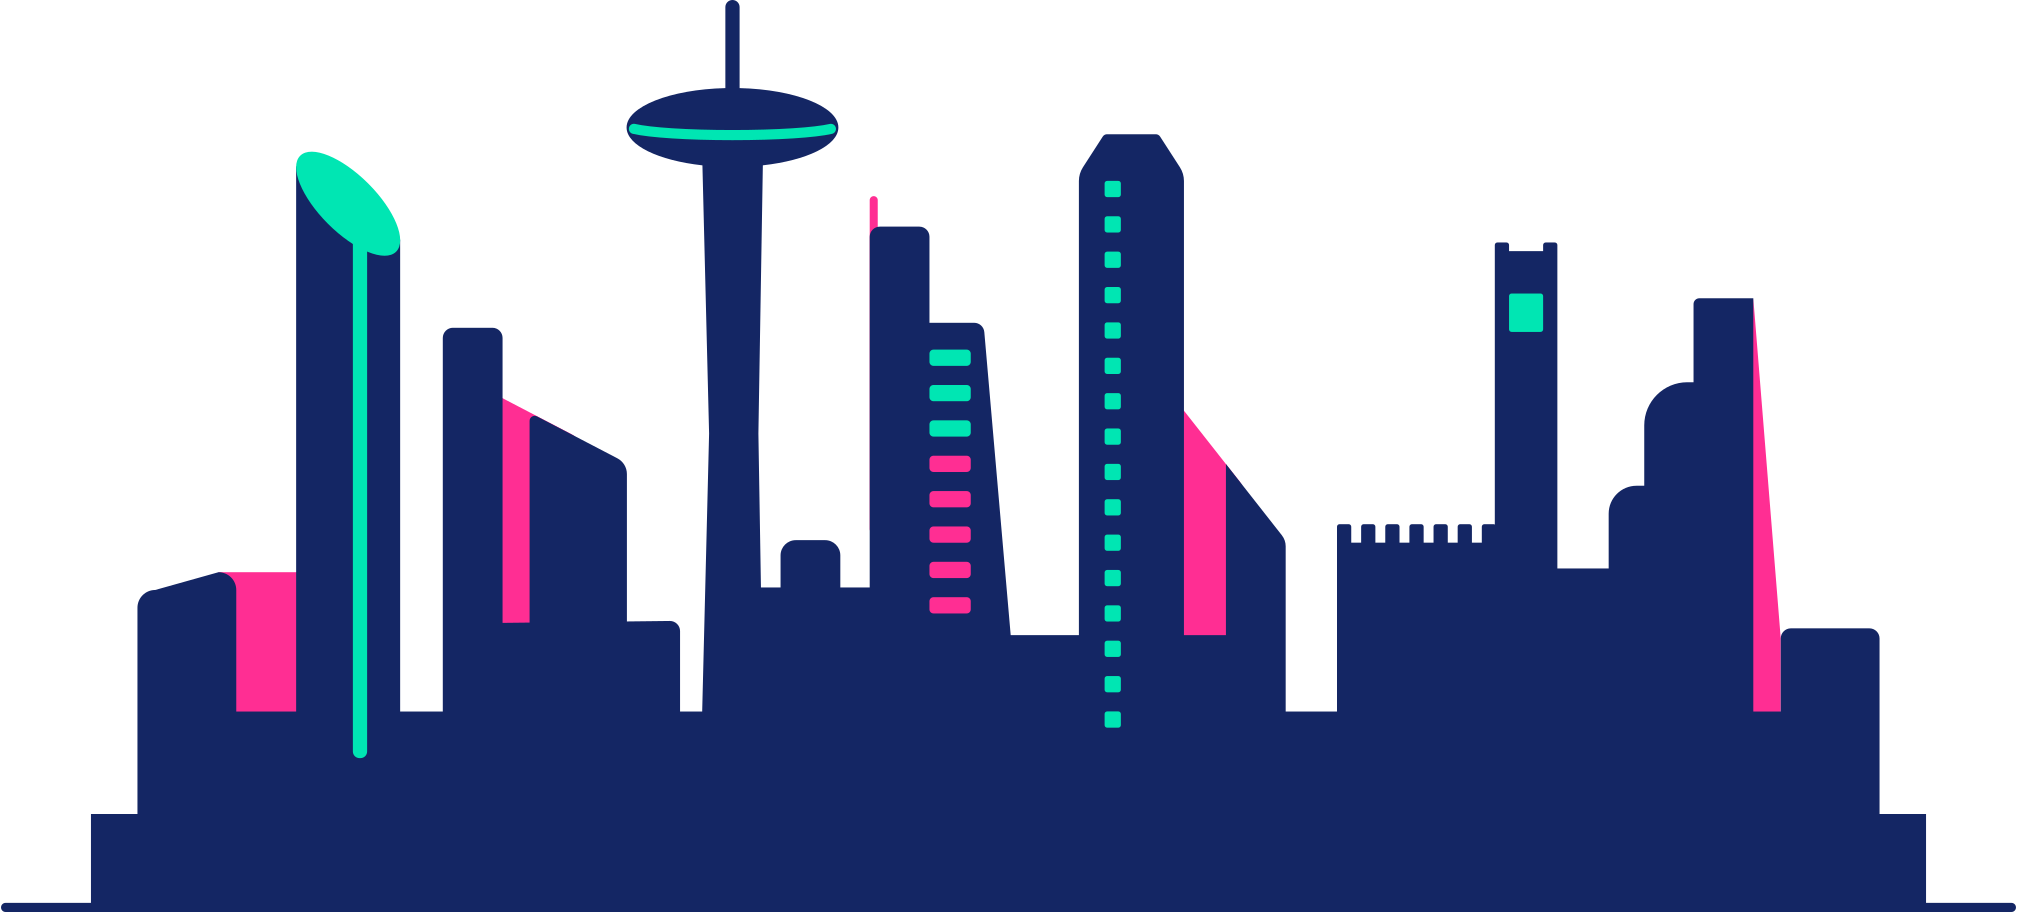 style cityscape Vector images in PNG and SVG   Icons8 Illustrations